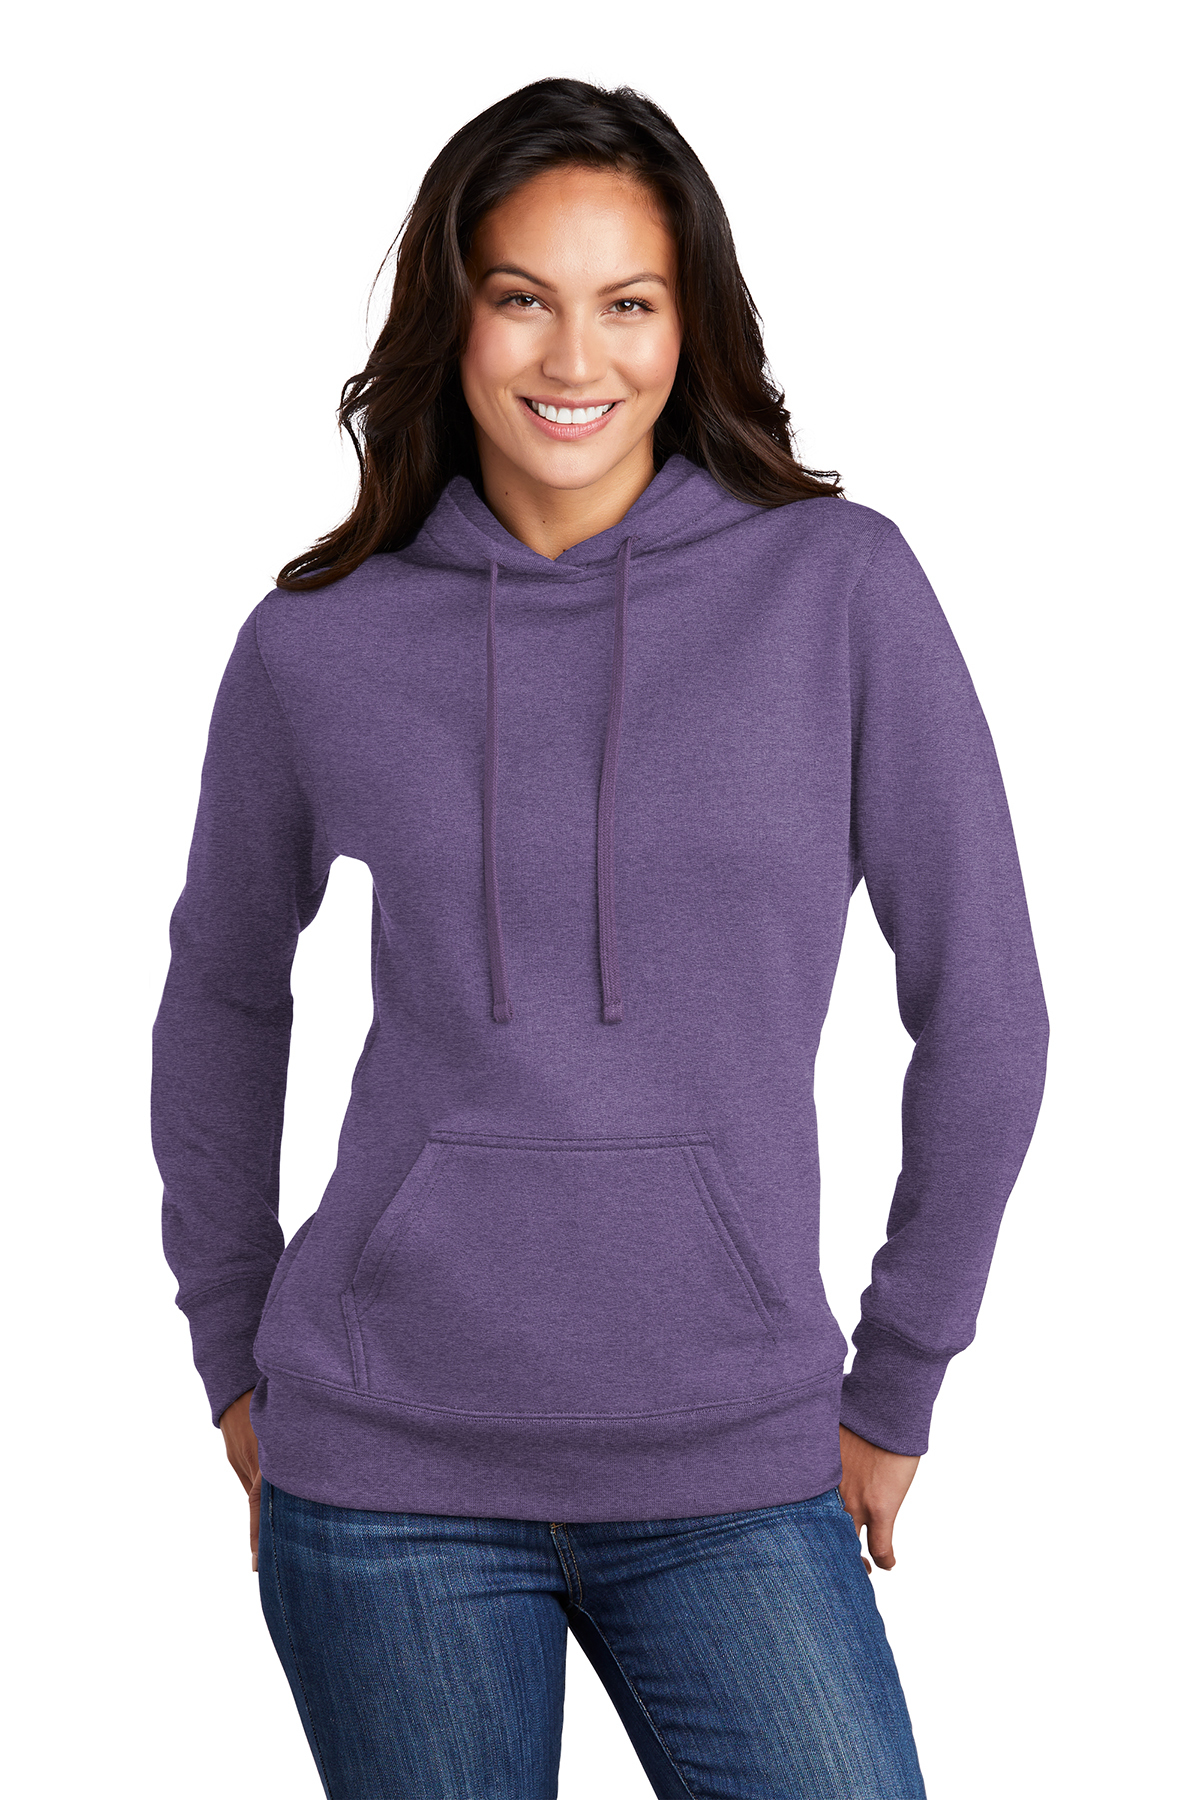 Ladies Hooded Sweatshirts -